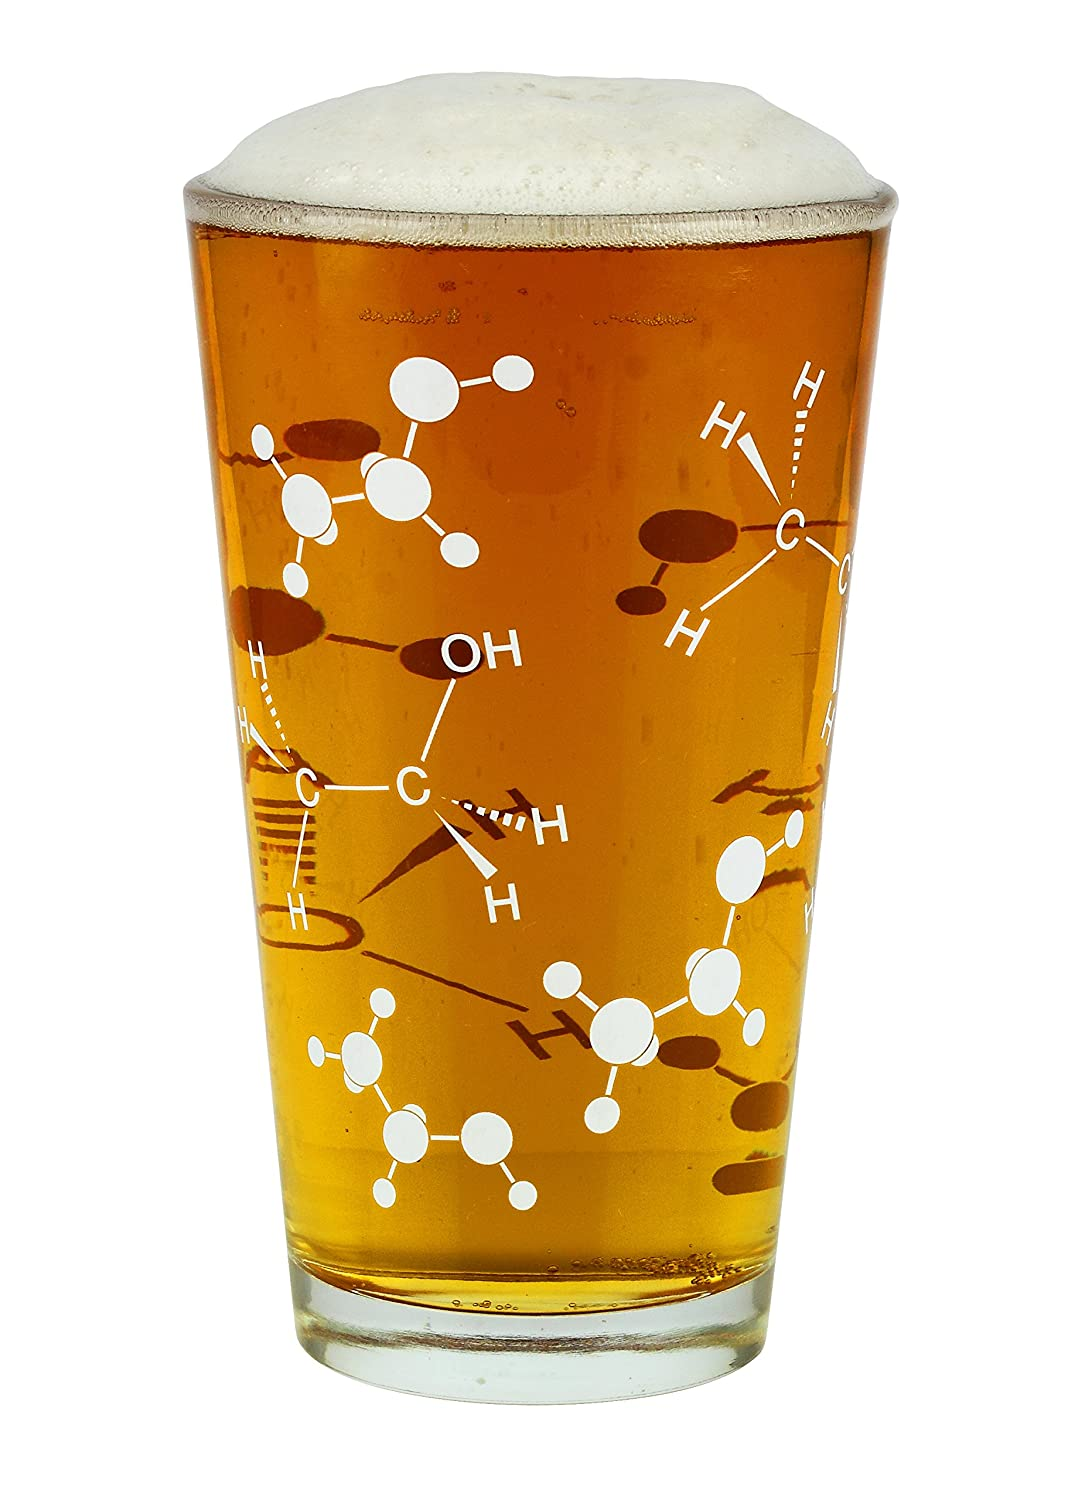 Barbuzzo Chemist Approved Beer Pint Glass, 16 Ounces - Bring Out Your Inner Nerd, Geek or Chemist - Great Gift for Bio & Chem Grads, Nurses, Doctors and all those in the Medical & Research Fields UTU3BR0143